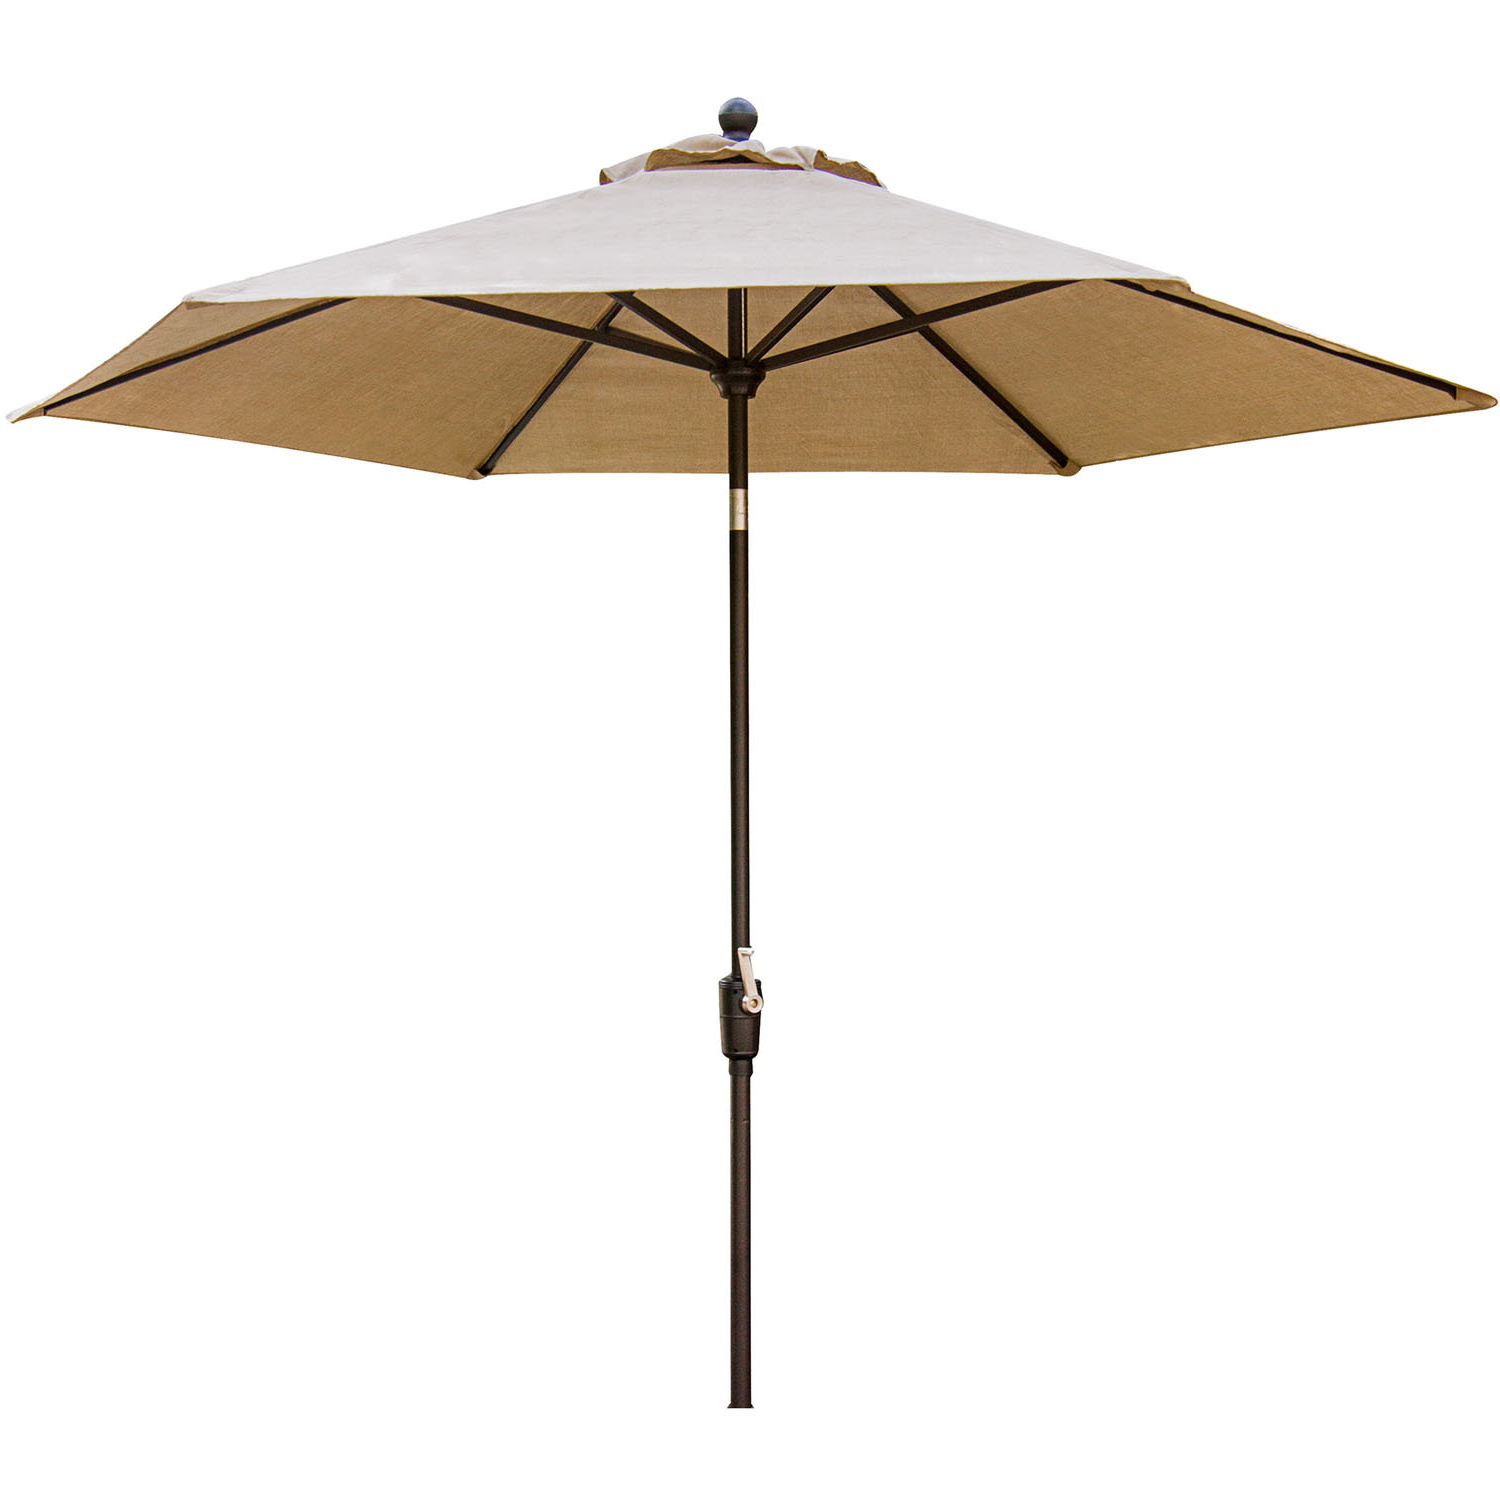 Annia 11' Market Umbrella In Favorite Bradford Patio Market Umbrellas (View 17 of 20)